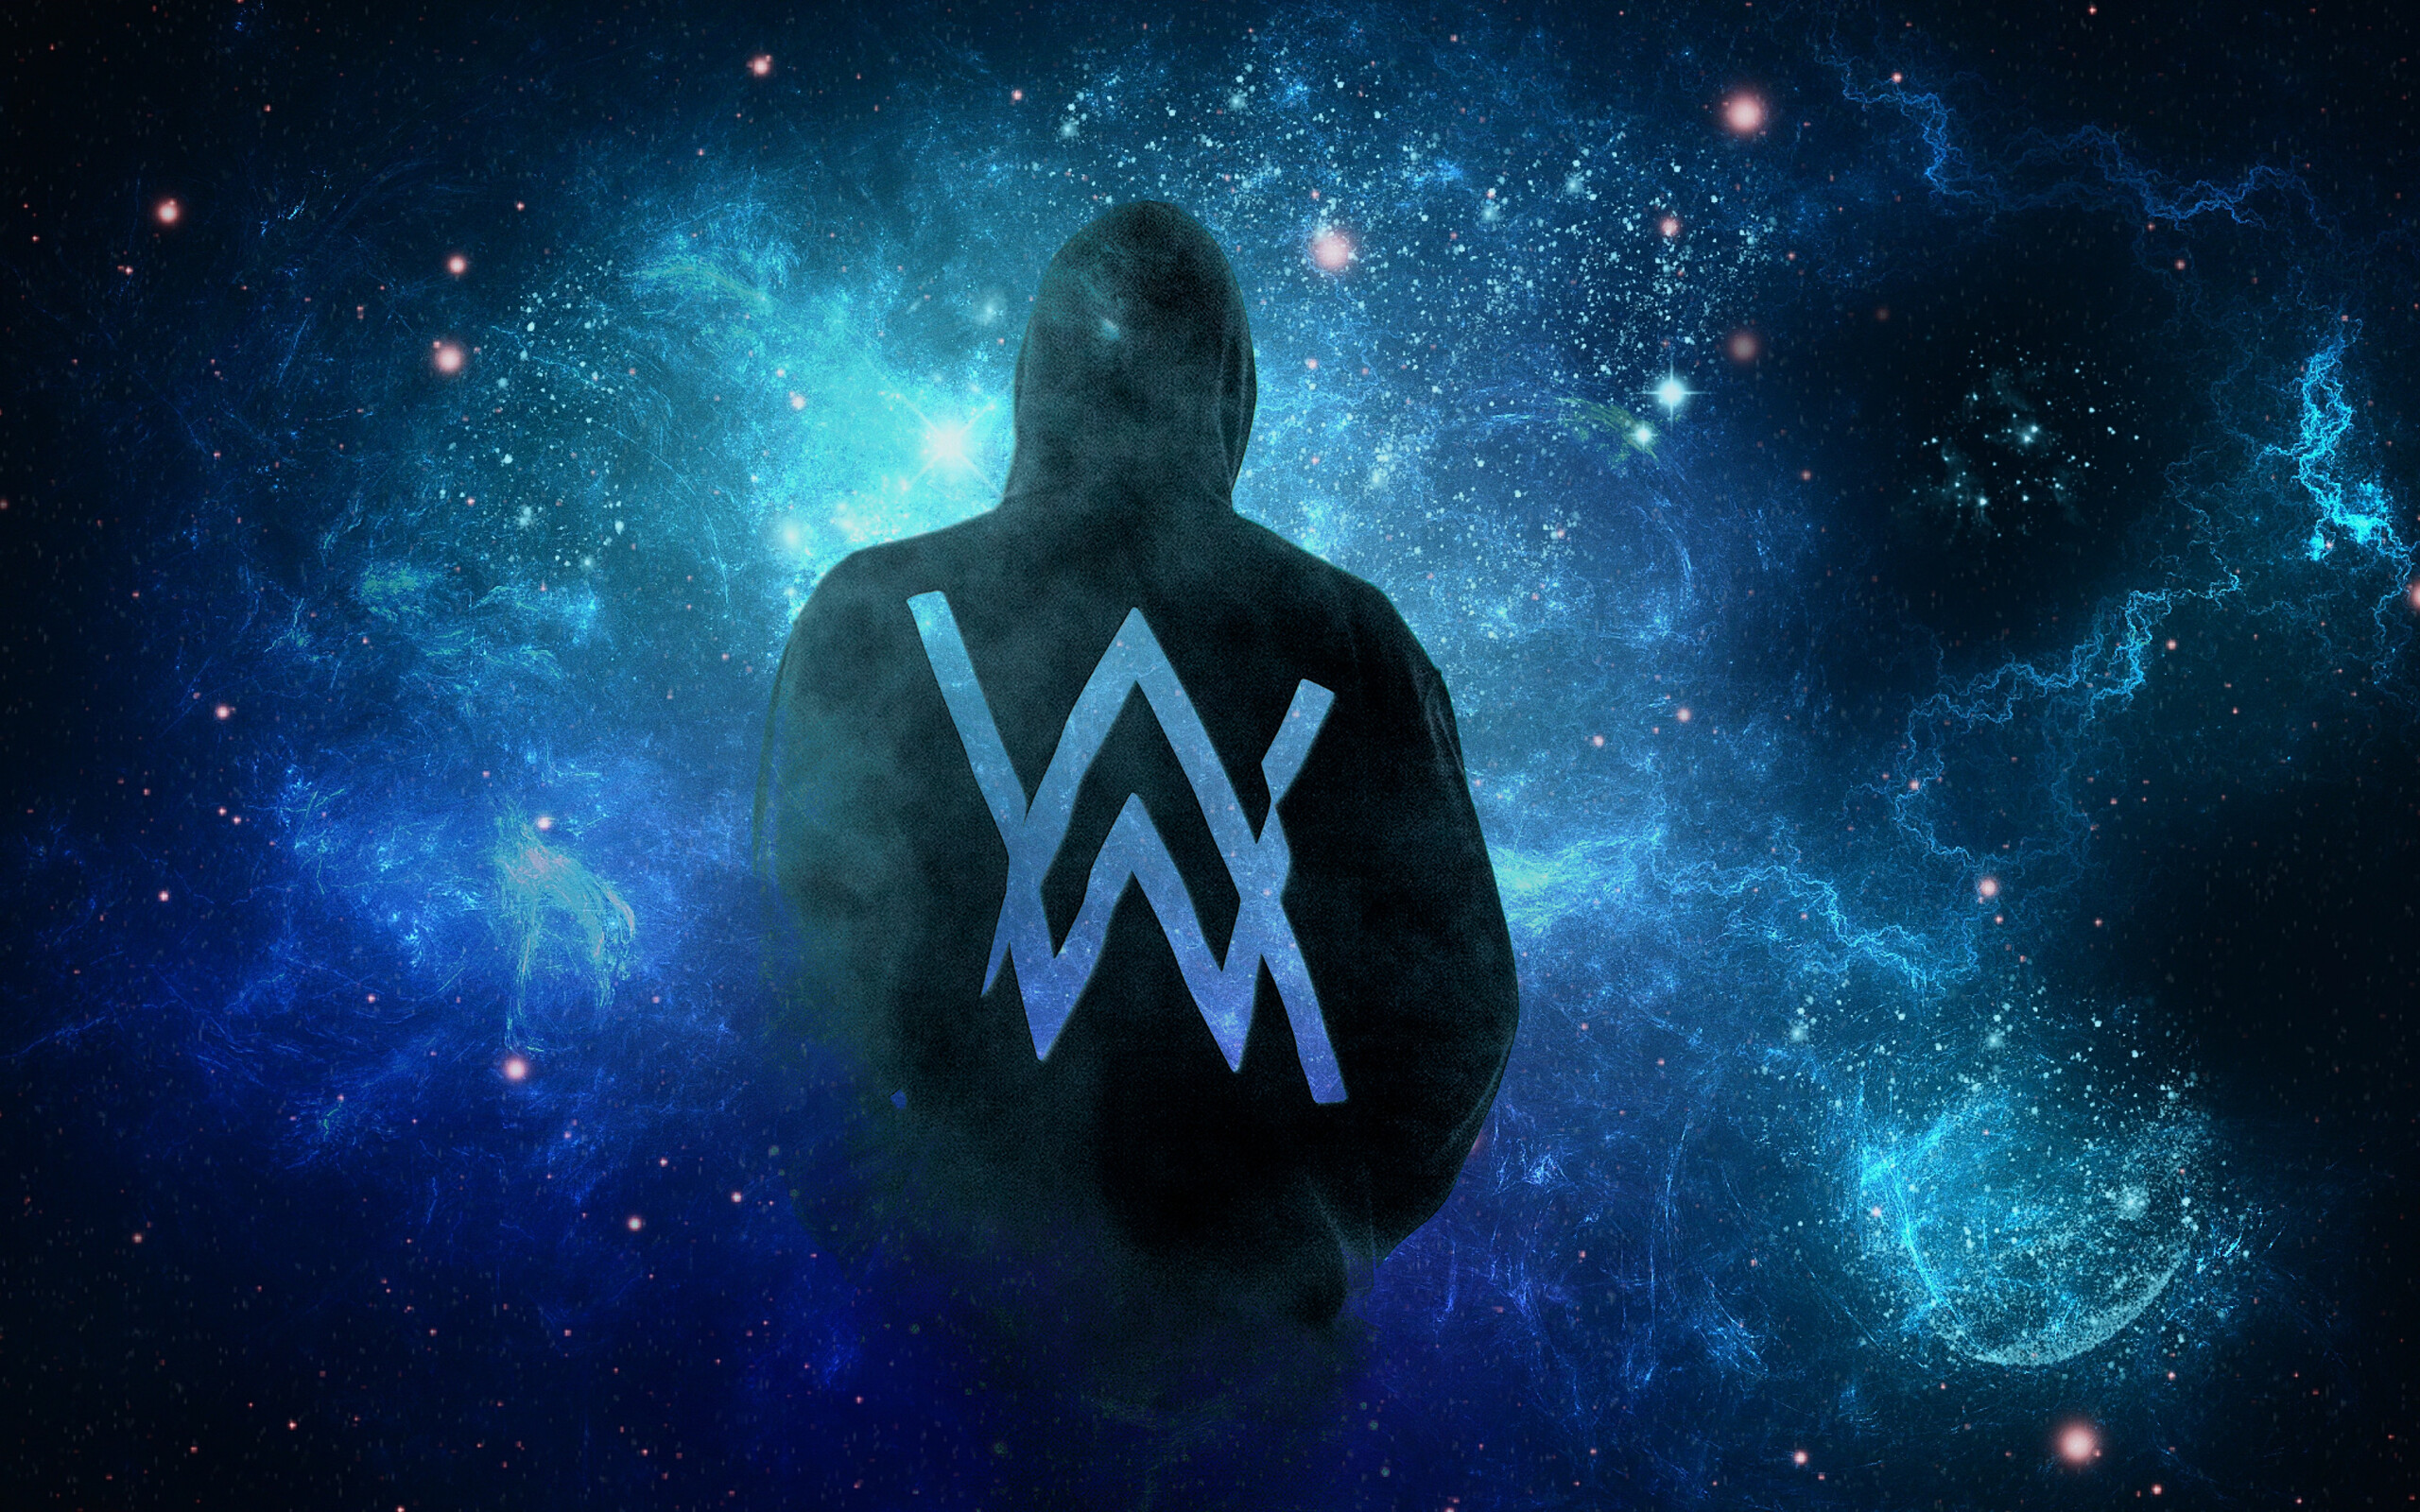 alan-walker-image.jpg